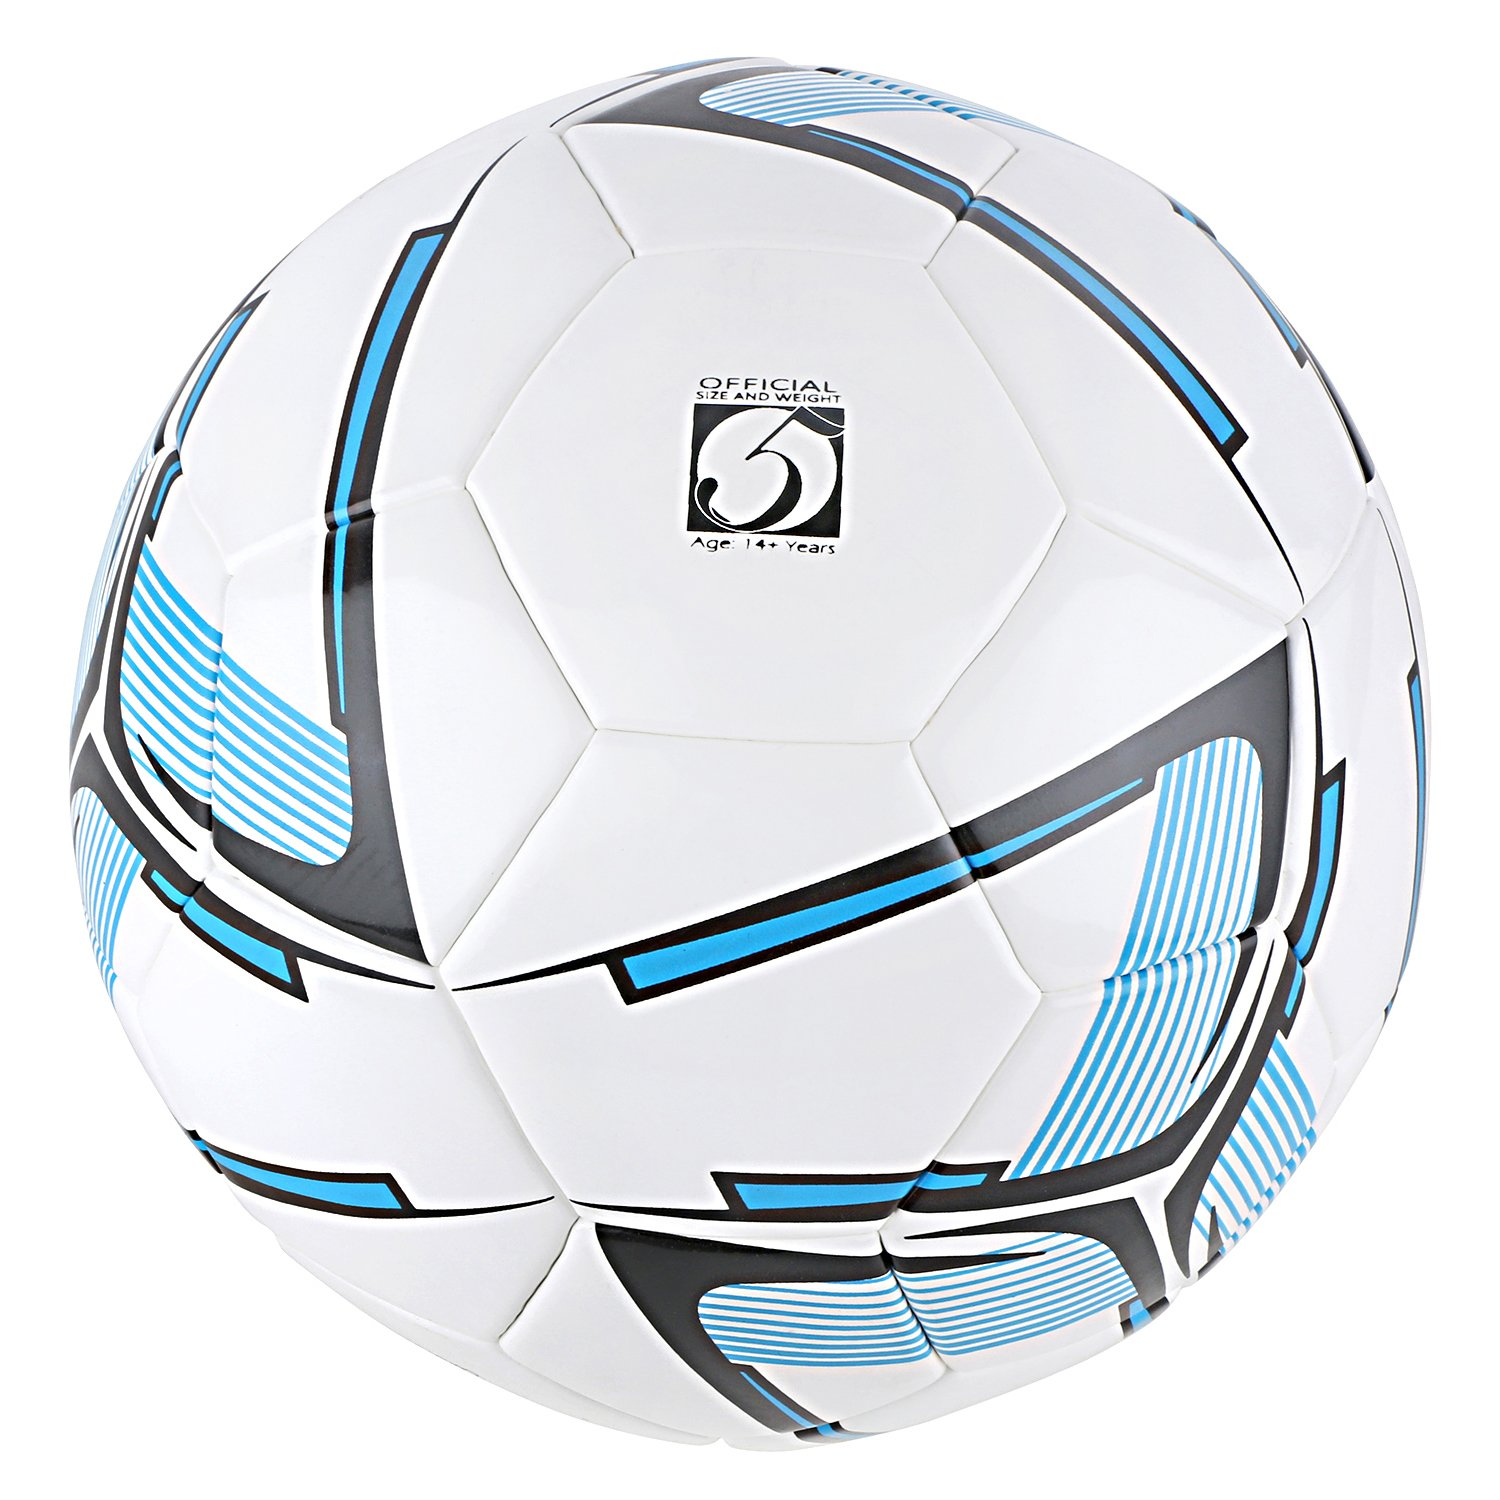 Spinway Football Pro Sw-500 for Professional Play,Water Resistant | (Blue) by Spinway (Image #3)